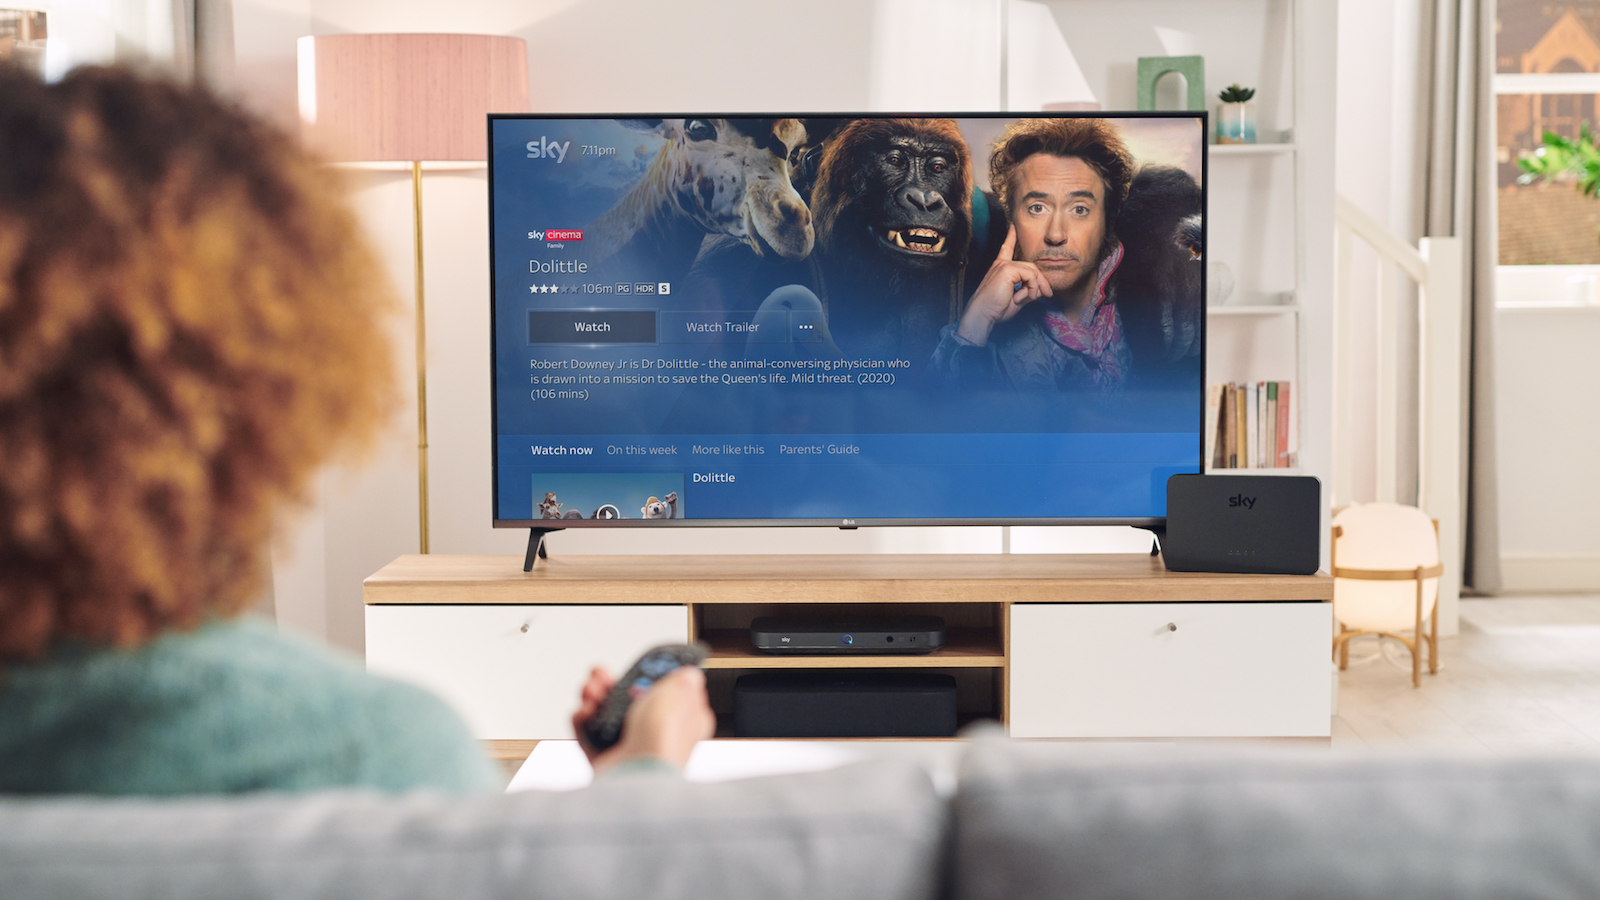 More HDR is coming to Sky Q – and it will be easier to find